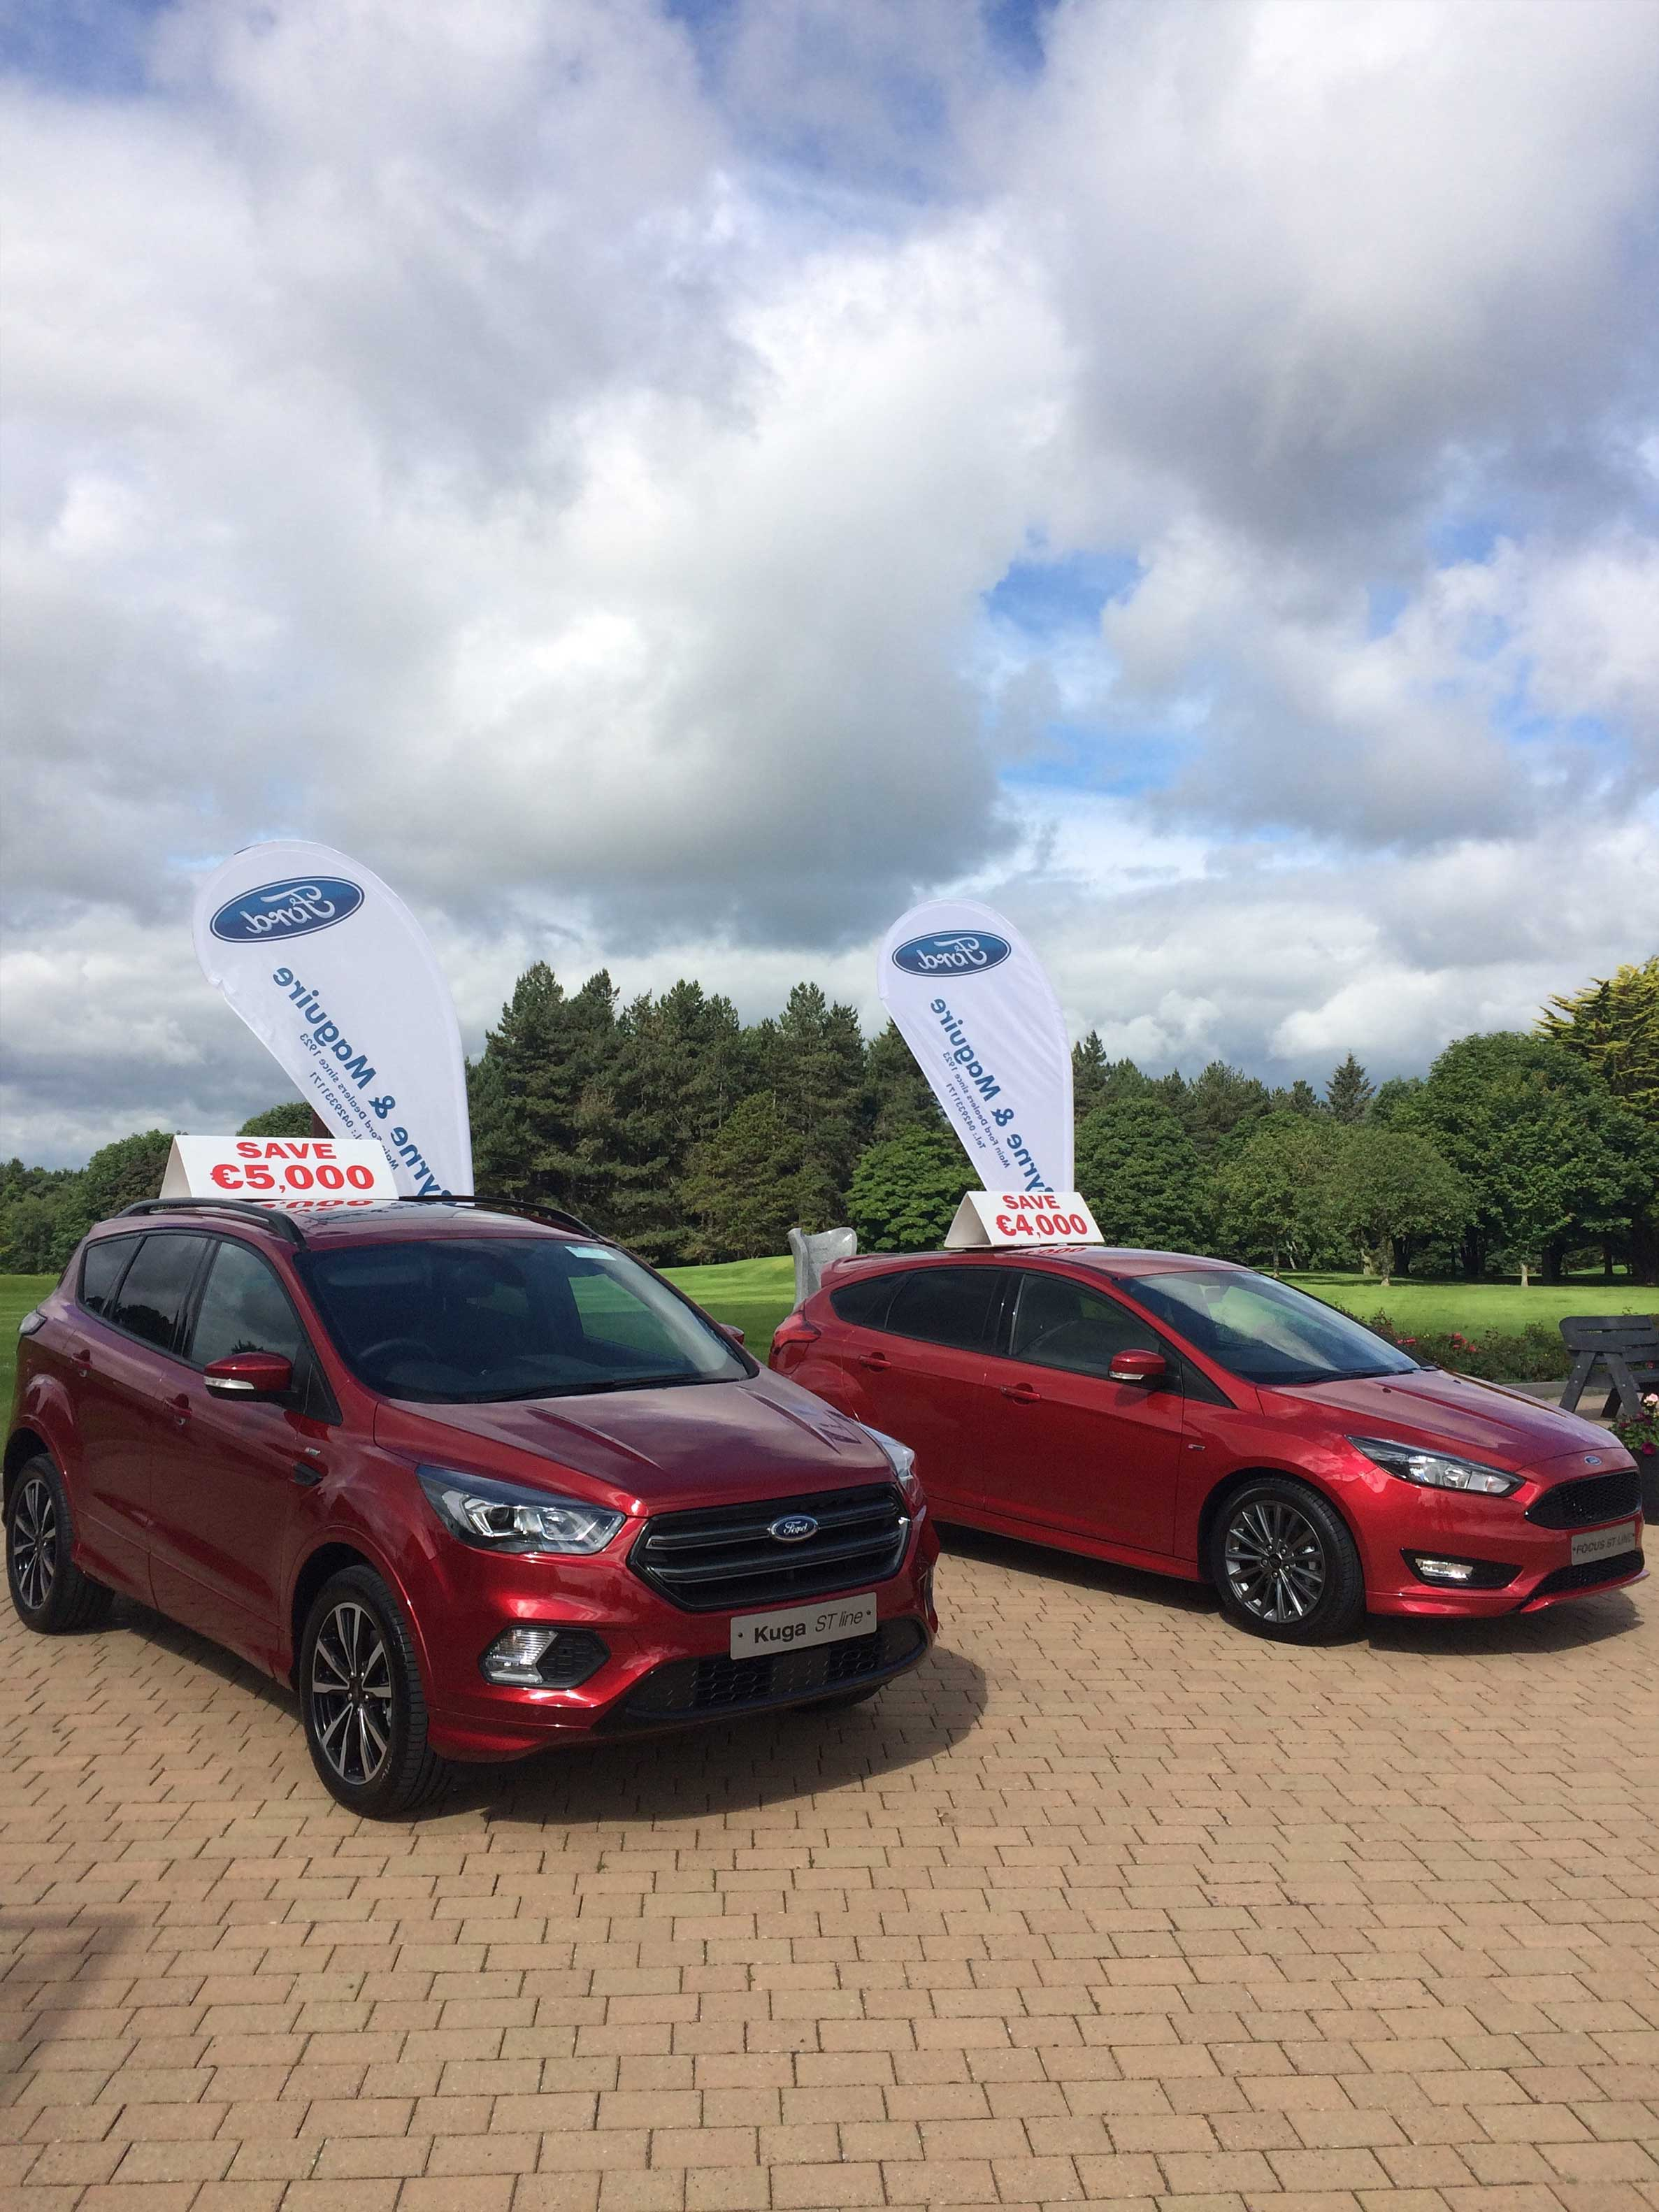 Ford Ranges on display